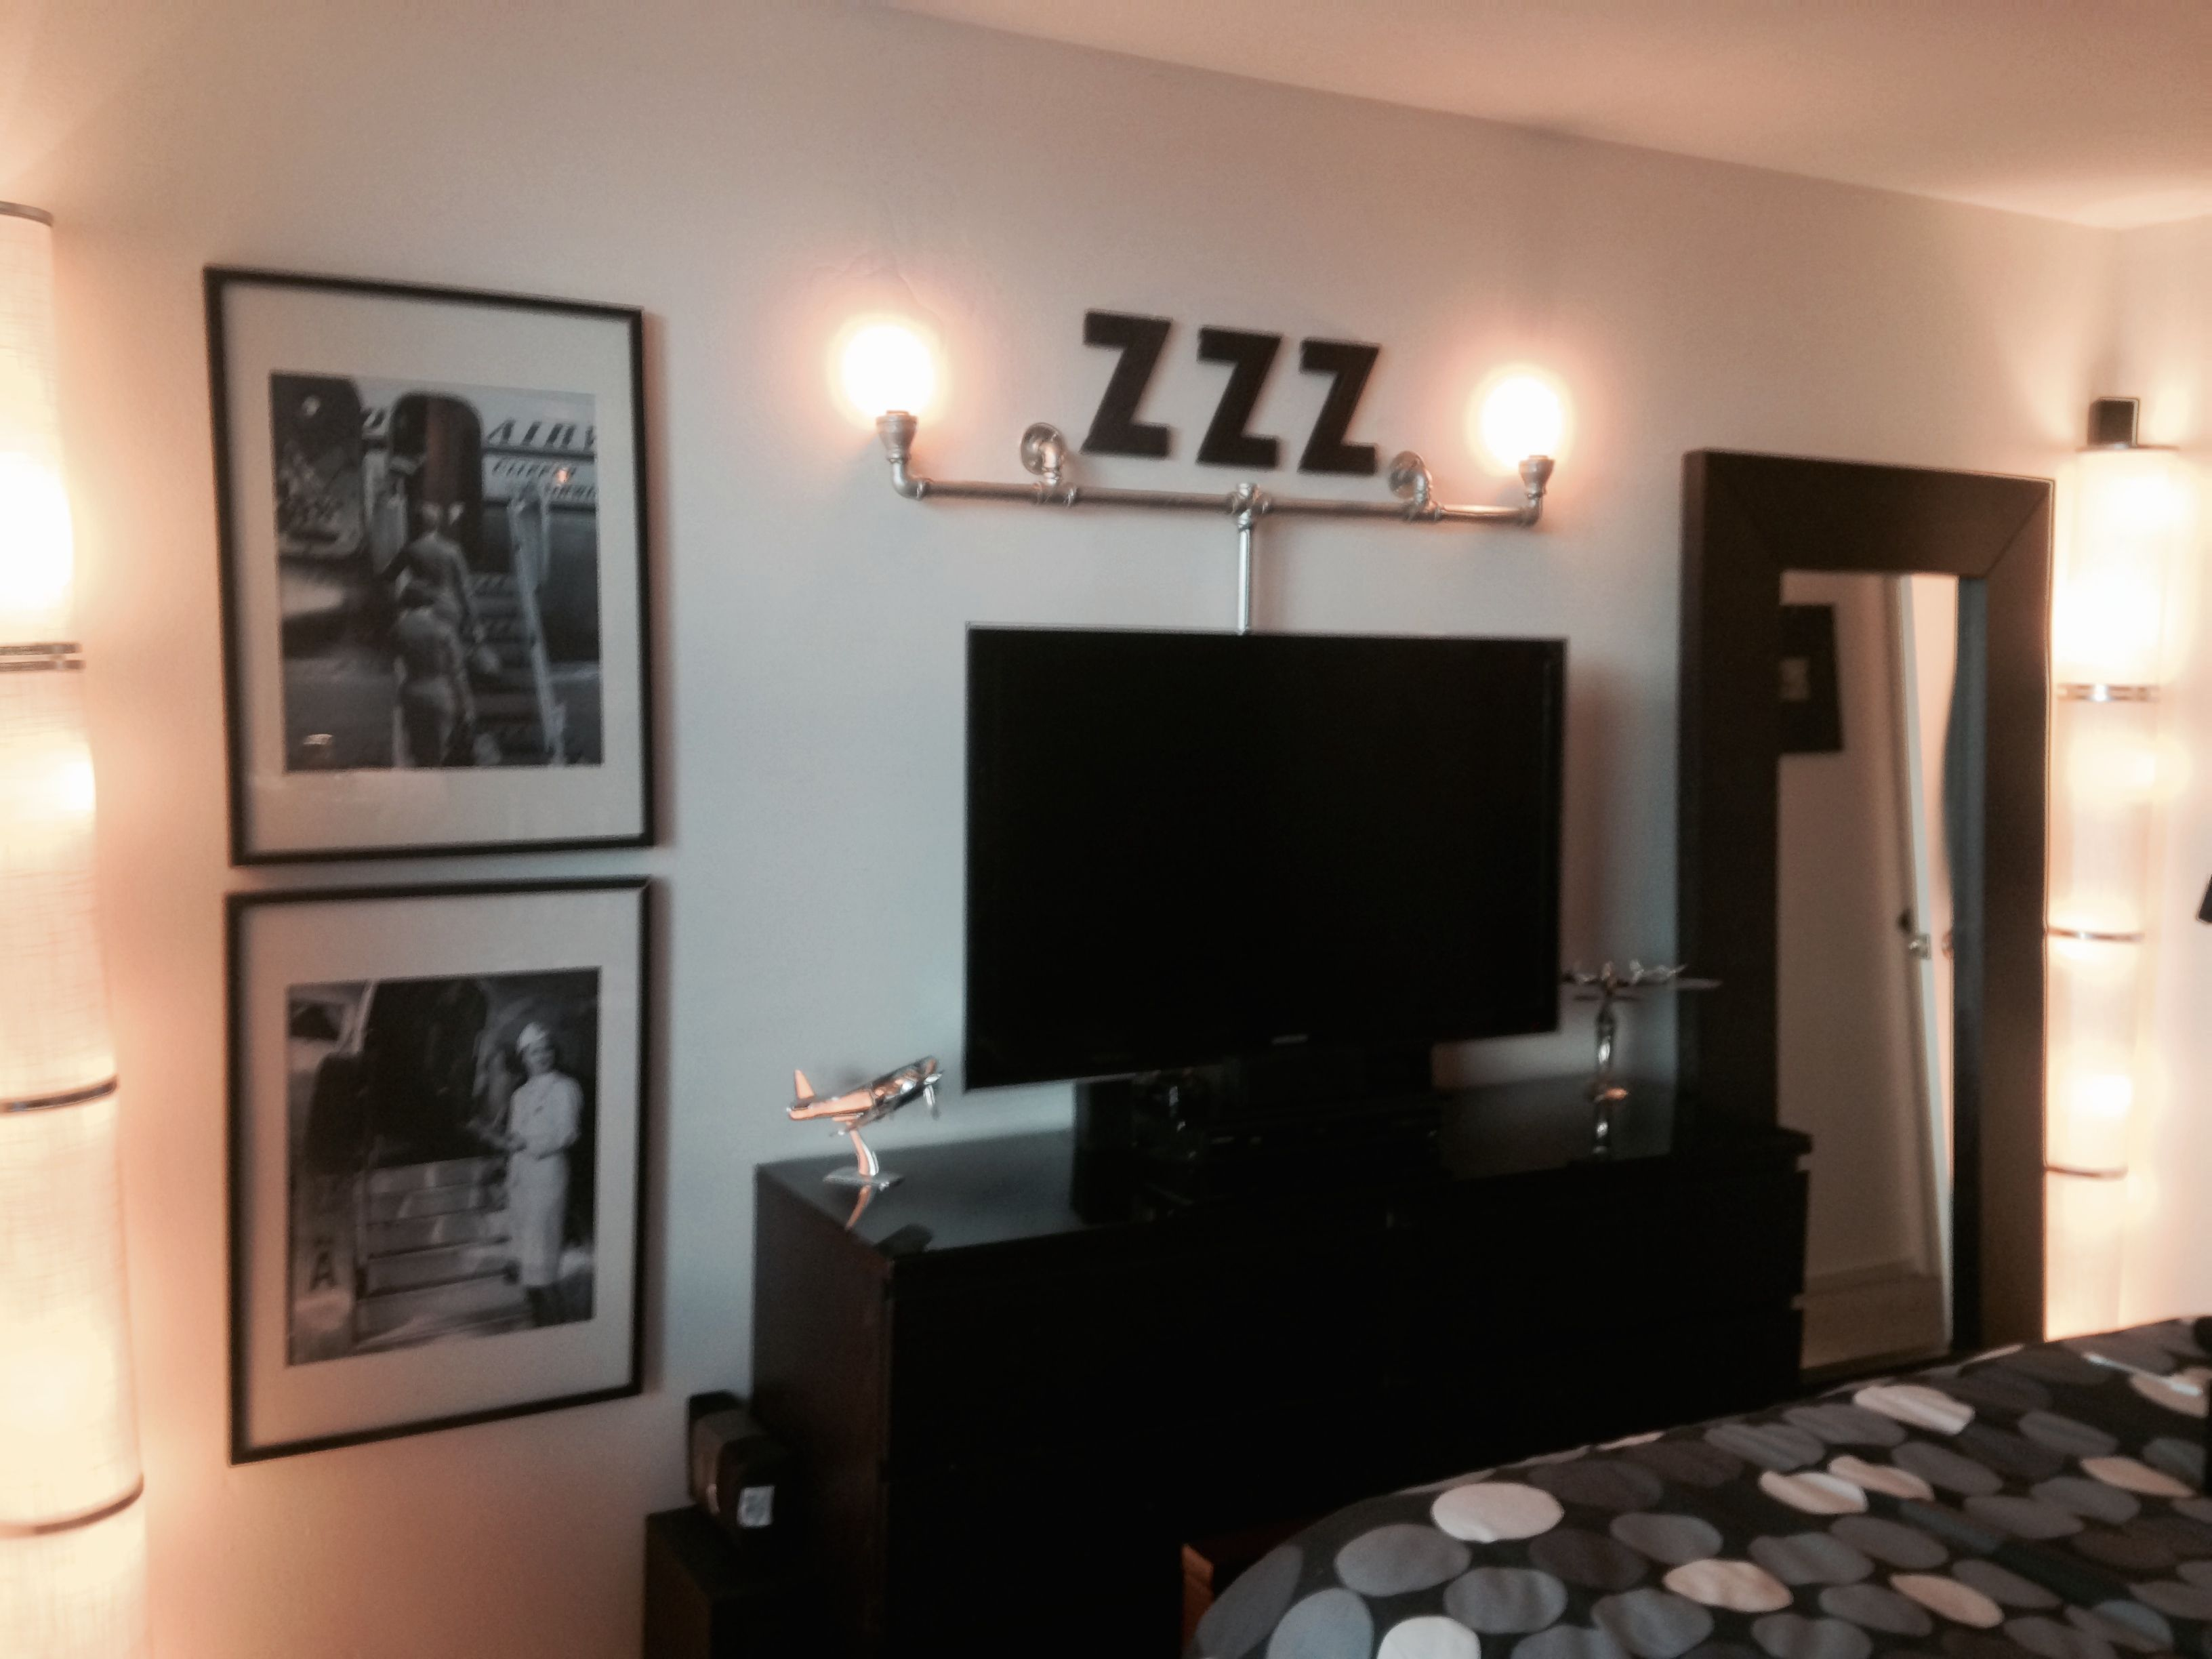 And all finished industrial chic bedroom lighting wall sconce